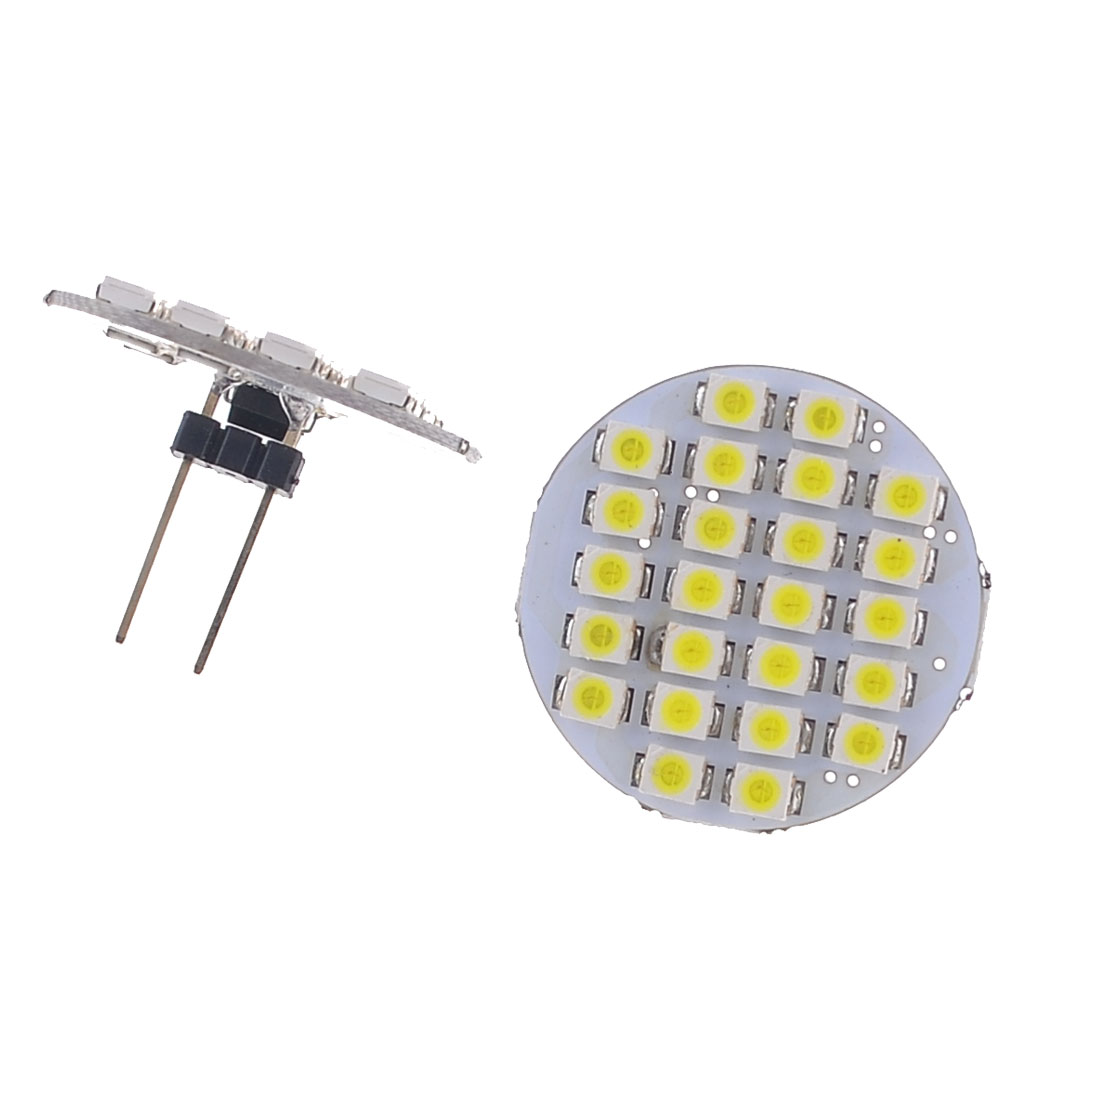 Pair G4 Back Pin 1210 SMD 24 LED Car Side Dome Light White 12V